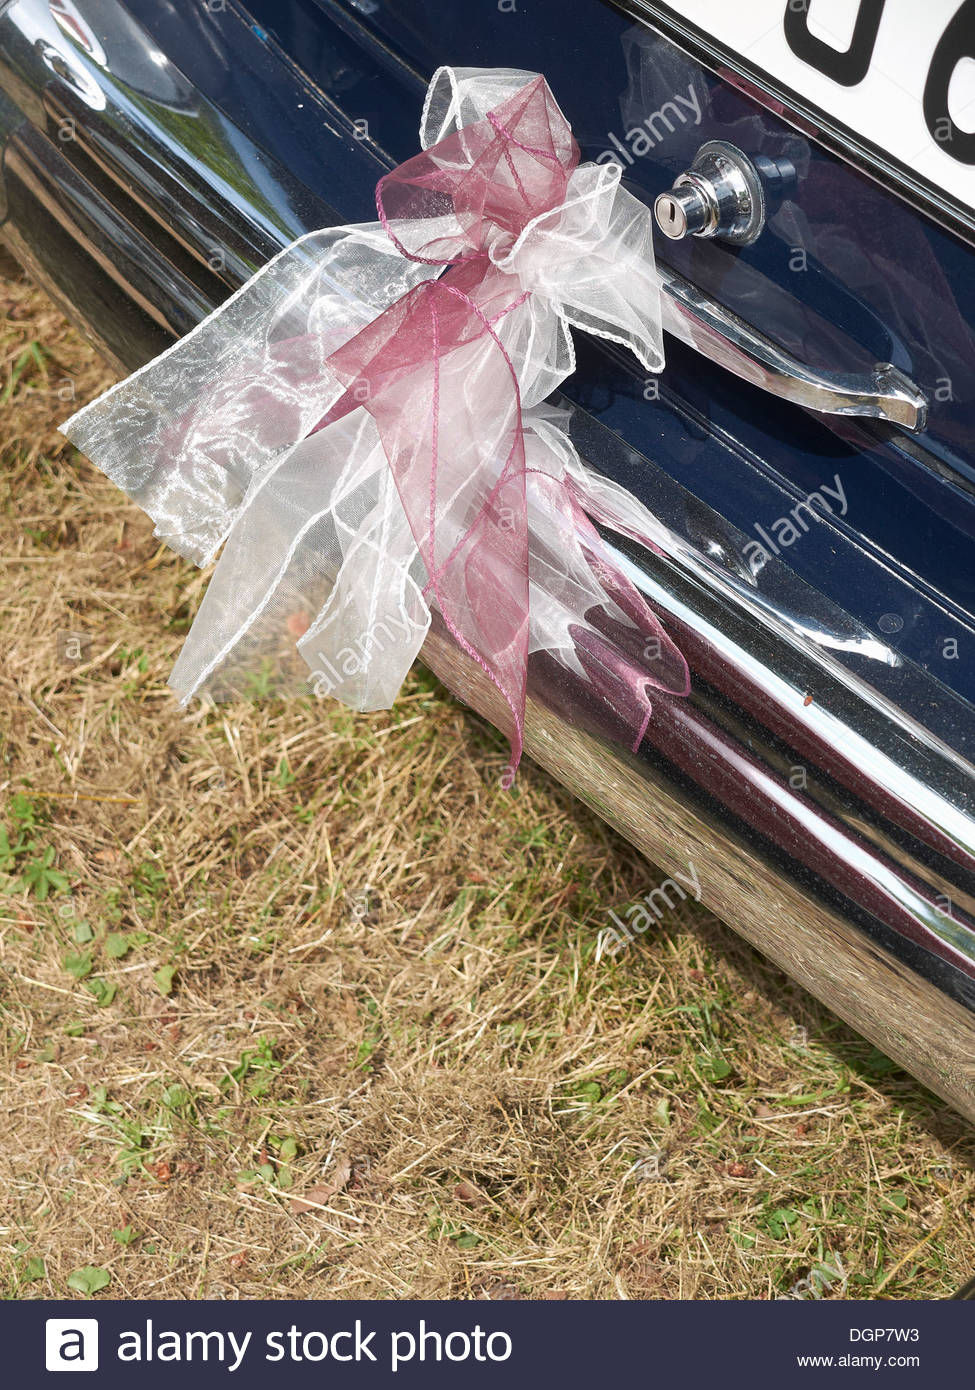 Germany, Hesse, Vintage car decorated with ribbon - Stock Image